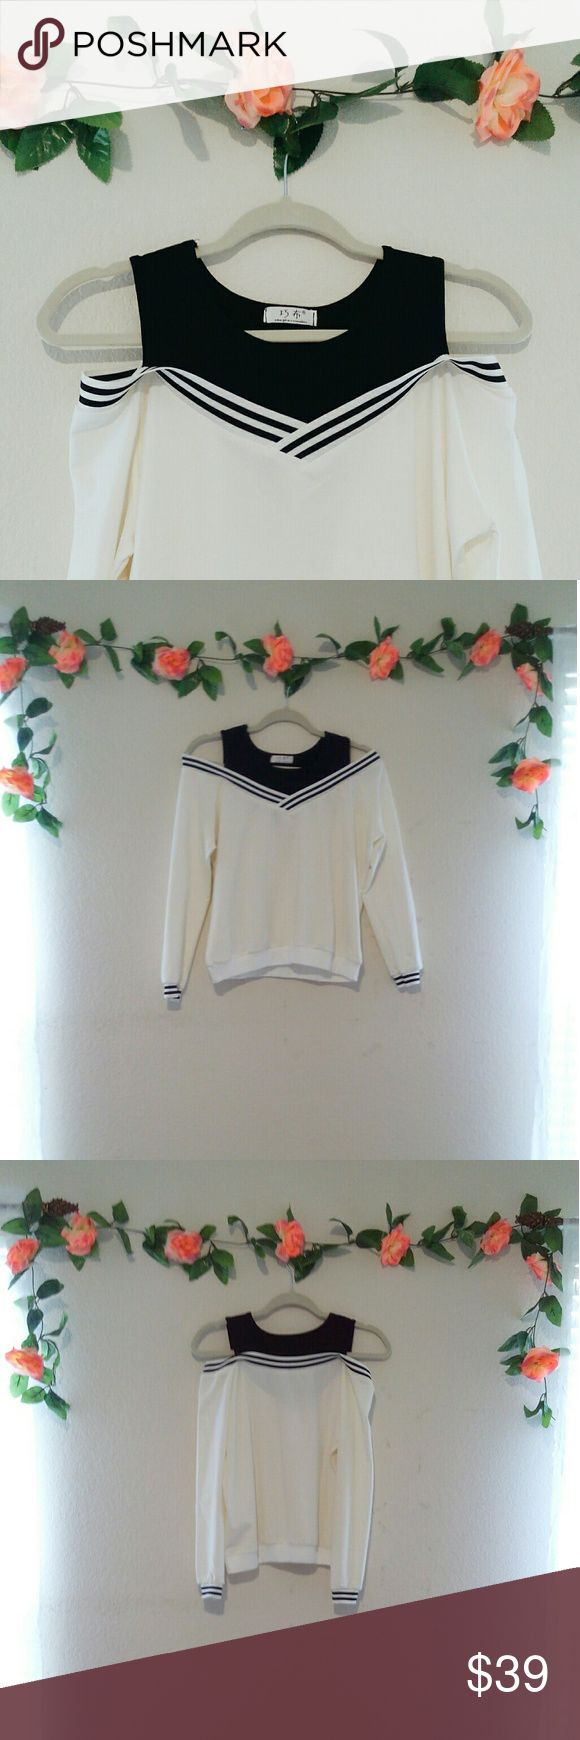 Mock Two Piece Sweater (NWOT) 🌹NWOT//Never Worn  This is a MOCK two piece sweater, so keep in mind that there is no actual undershirt!  If you wear a colorful or super dark bra, it might show a bit through the white fabric so I suggest going with a nude bra or wearing an undershirt.  Perfect for small sizes (medium for a fitted look).  *NOT by Brandy Melville!   Make a reasonable offer⛅ Brandy Melville Sweaters